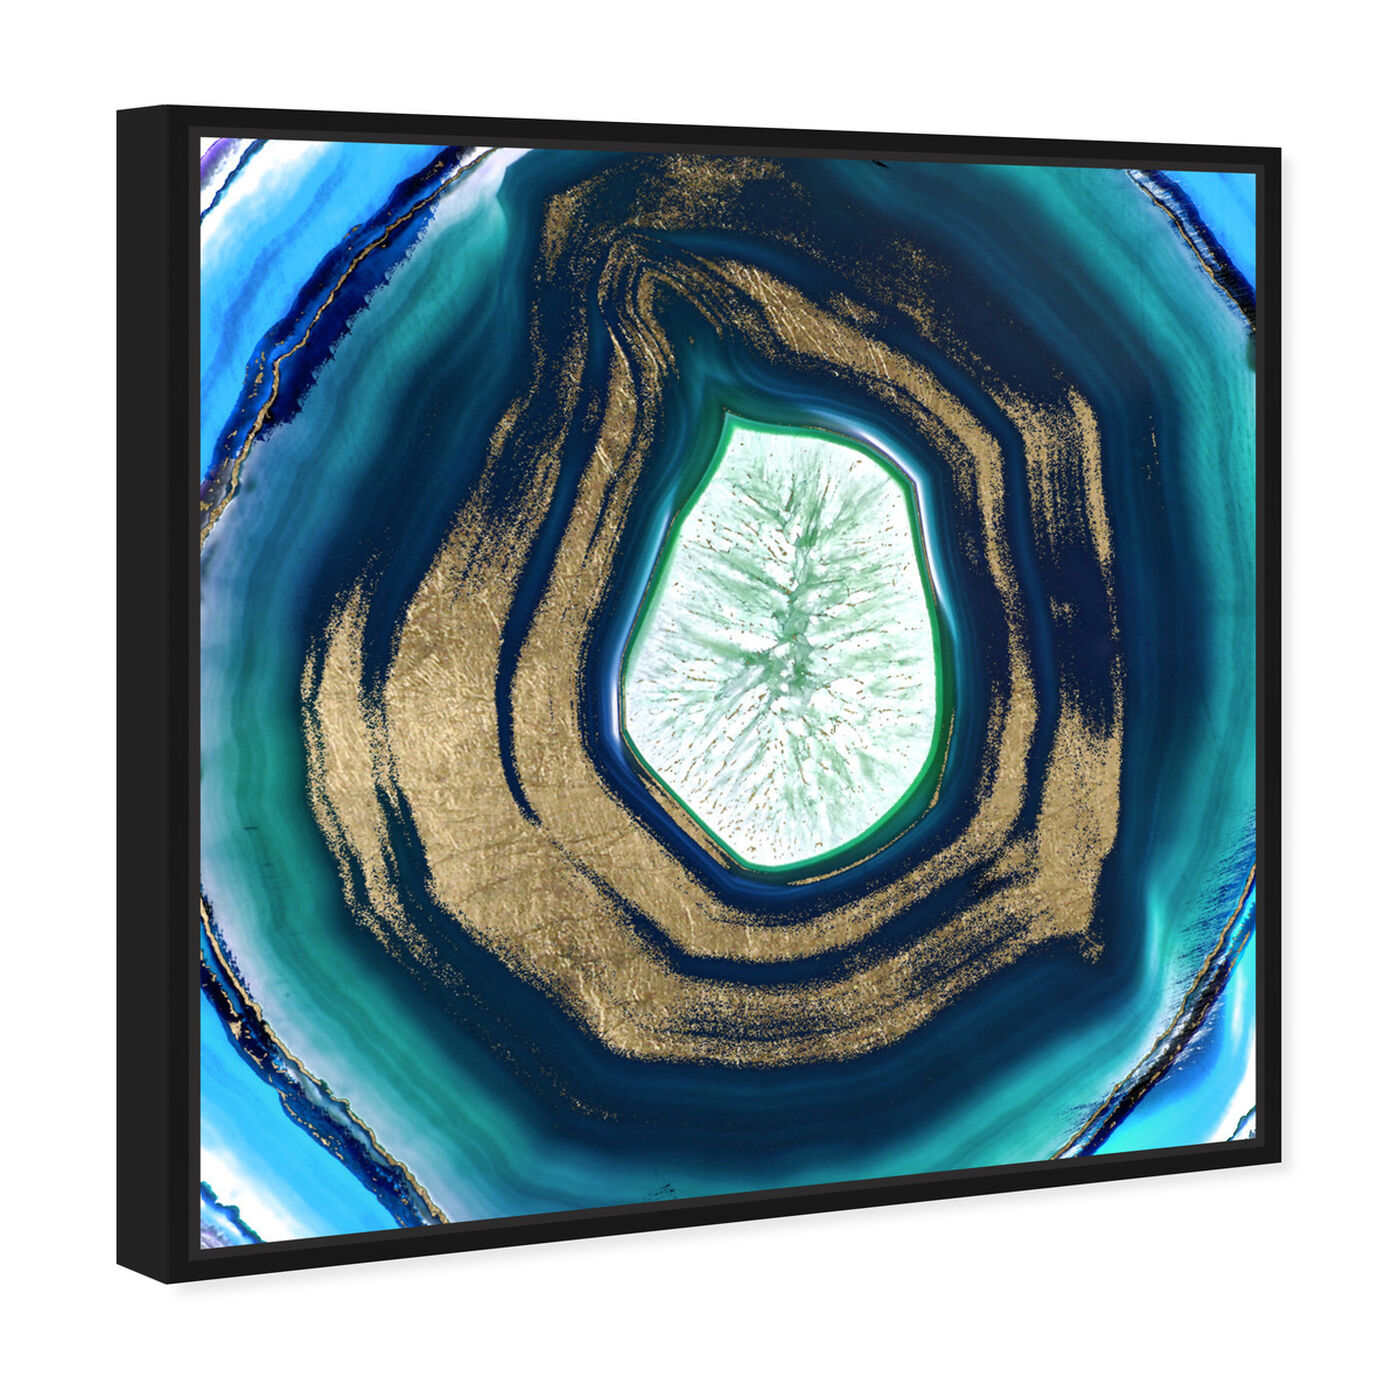 Angled view of Bluelove Geo featuring abstract and crystals art.